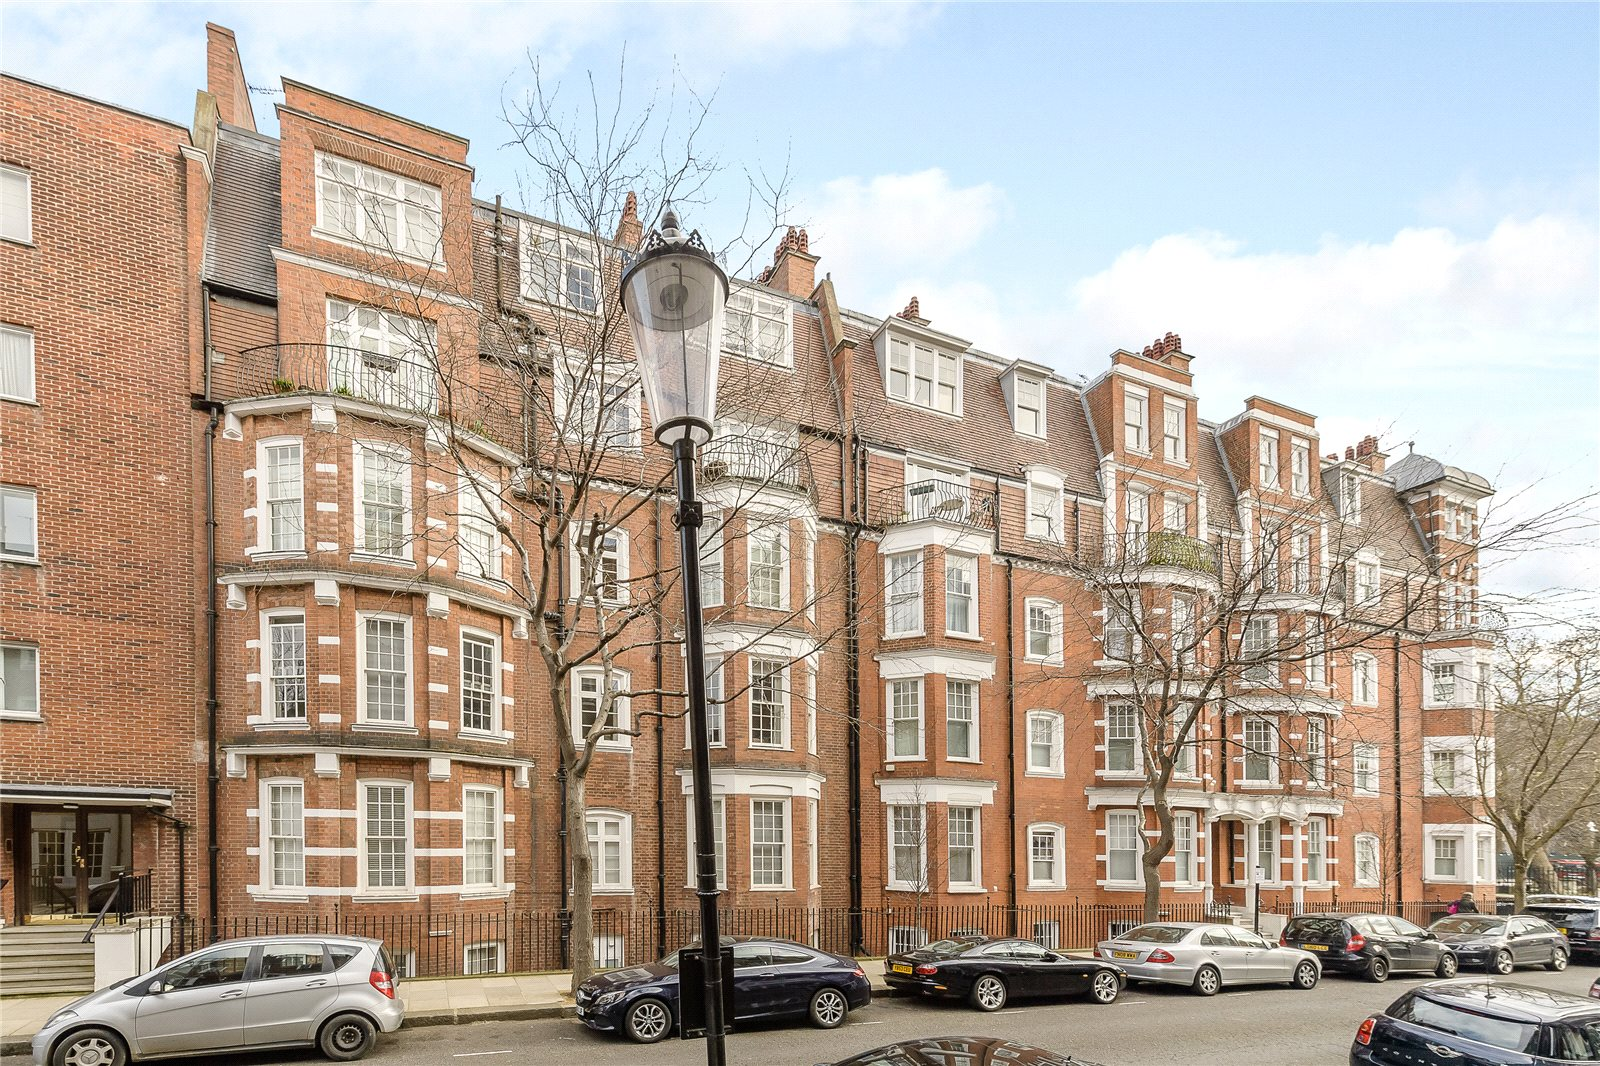 Apartments / Residences for Sale at Sloane Court East, London, SW3 London, England